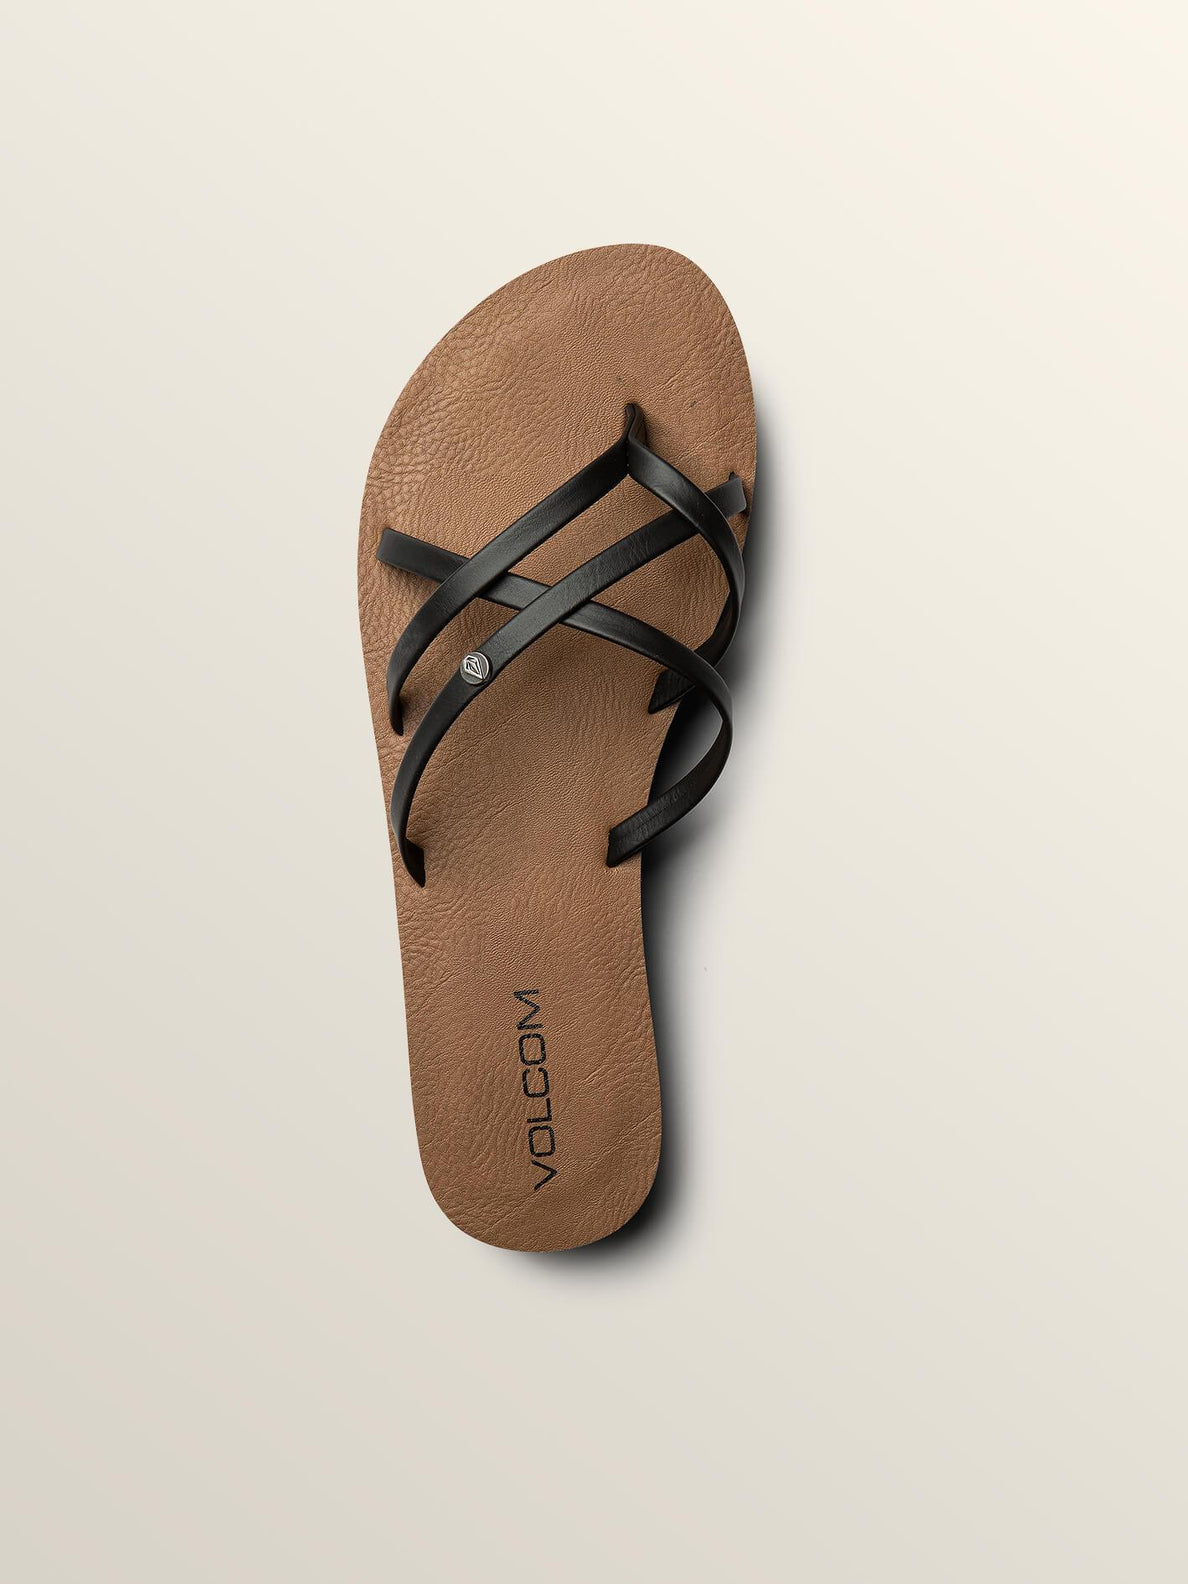 New School Sandals In Black, Alternate View